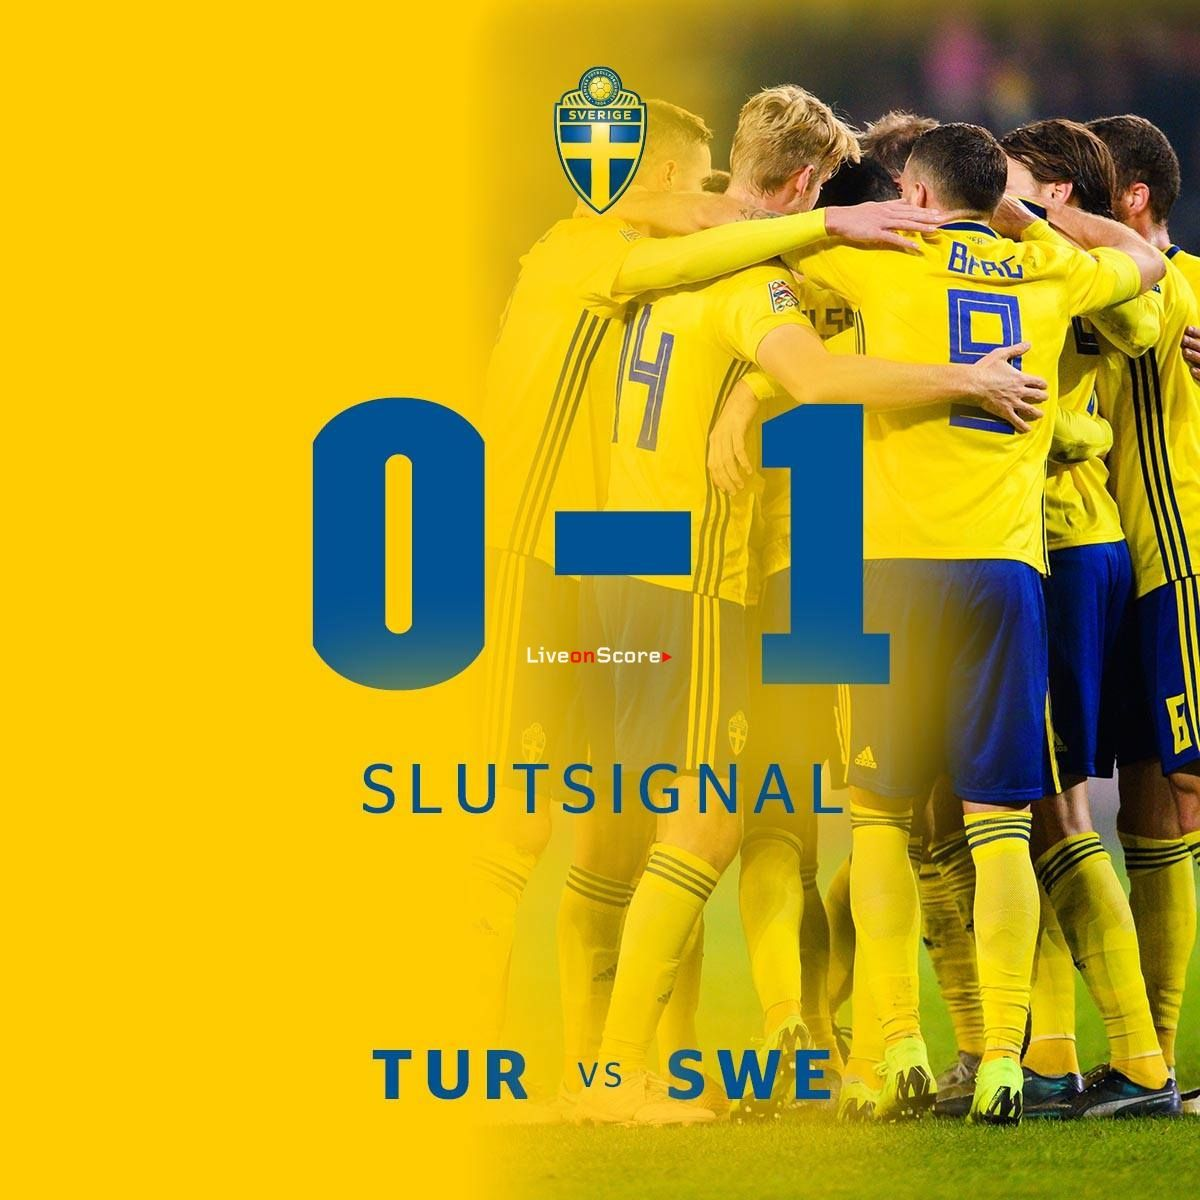 Turkey 0 1 Sweden Full Highlight Video Uefa Nations League 2018 2019 Sweden Football League Full Highlights